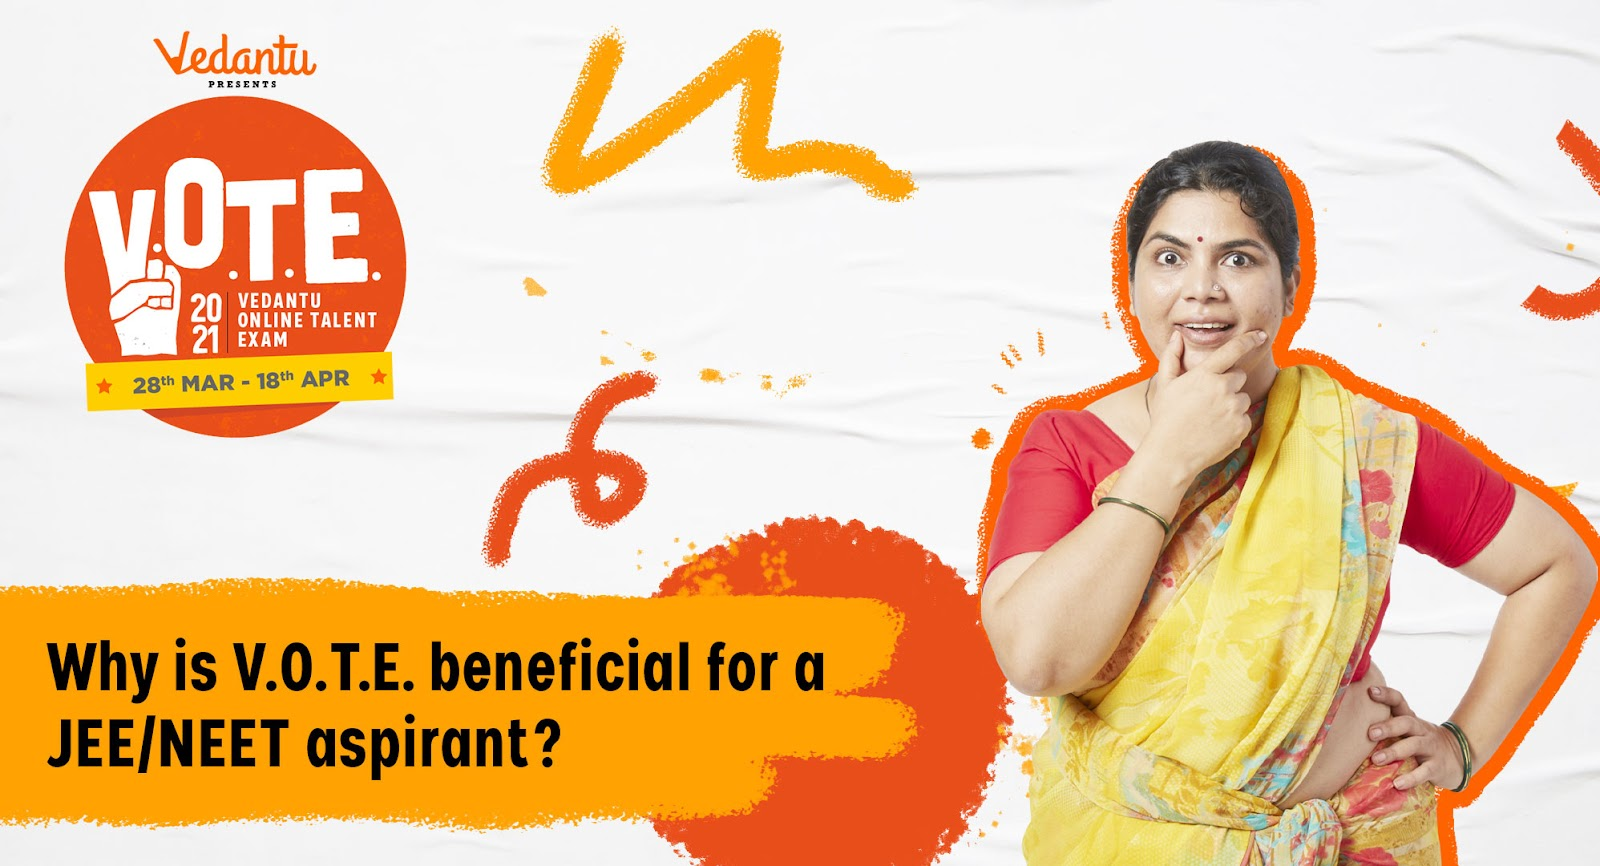 Why is V.O.T.E. Beneficial for JEE and NEET Aspirants?